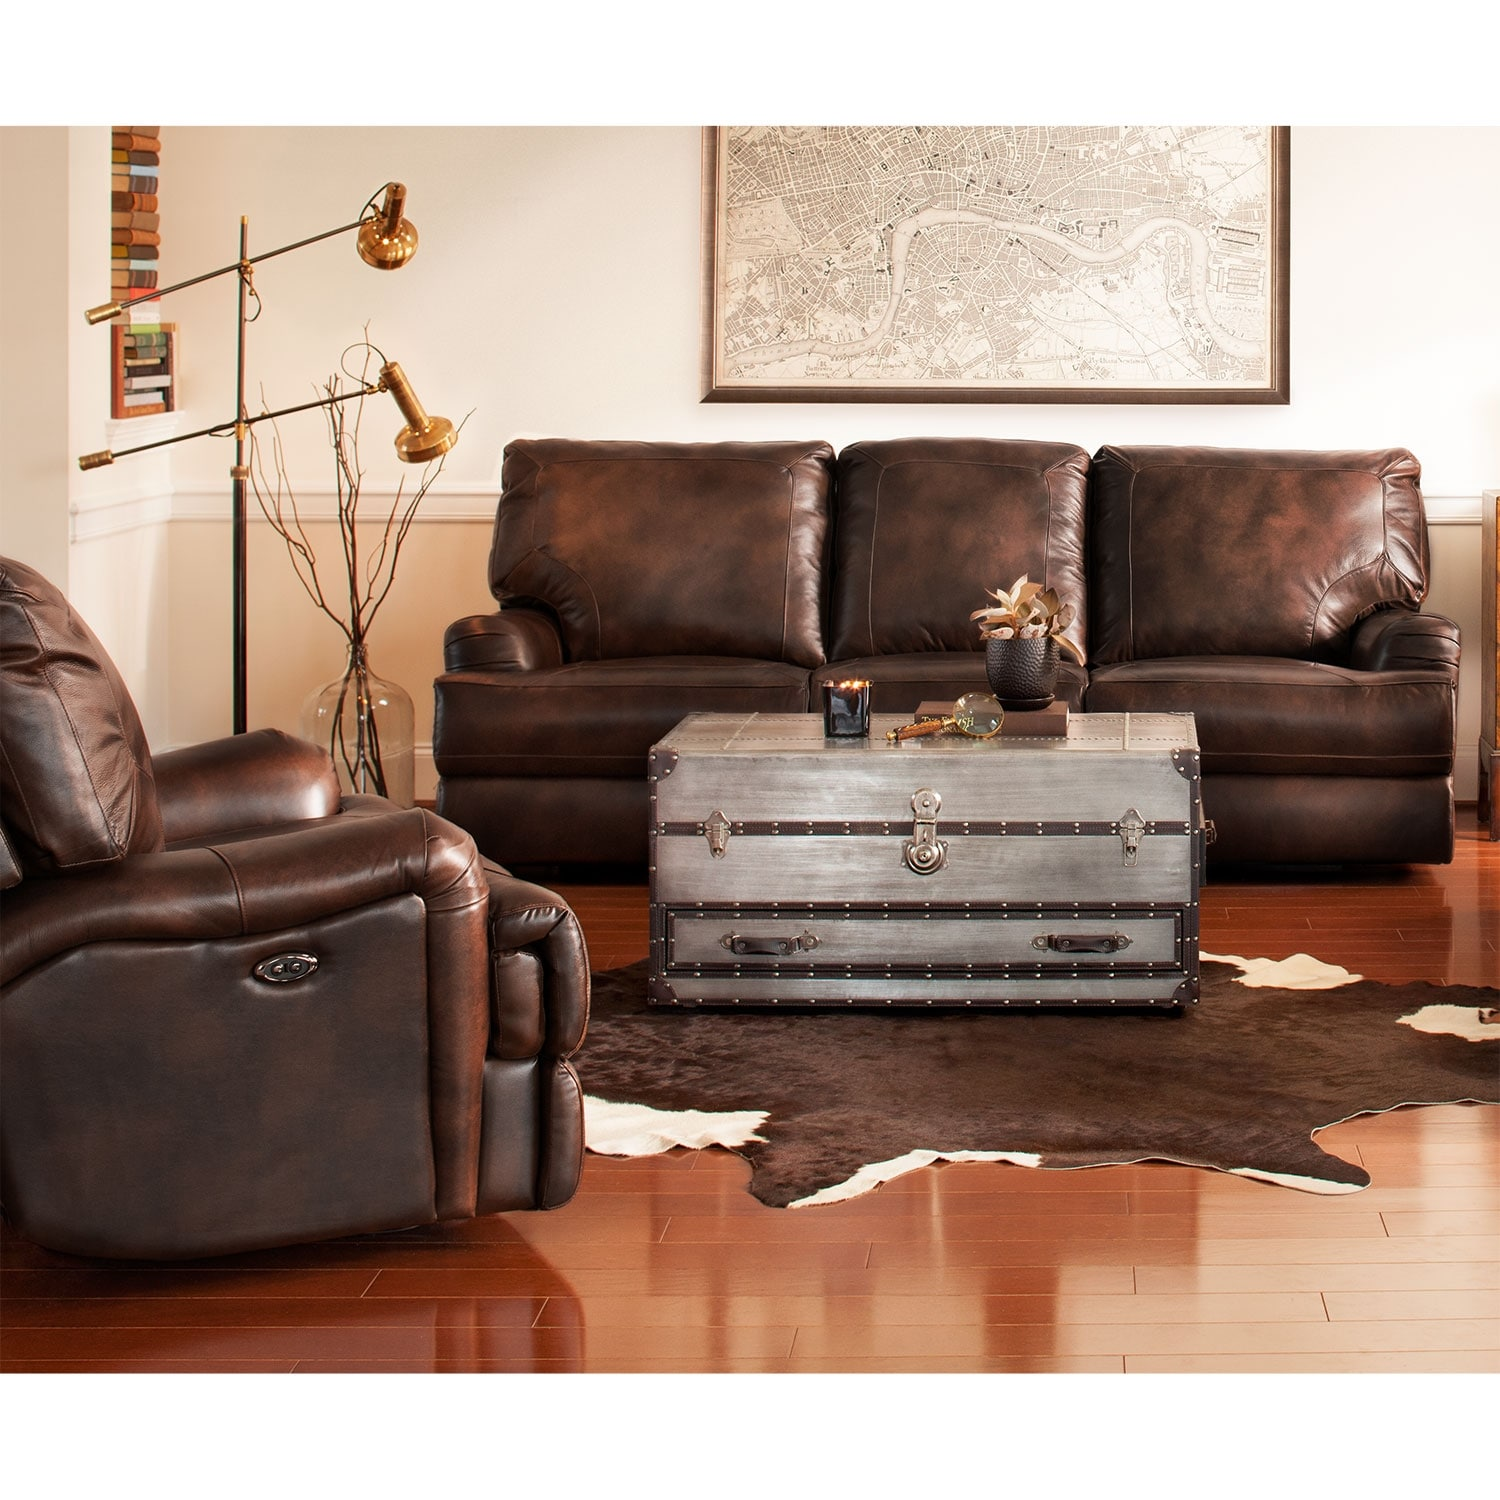 Living Room Furniture - Kingsway 2 Pc. Power Reclining Living Room w/ Recliner